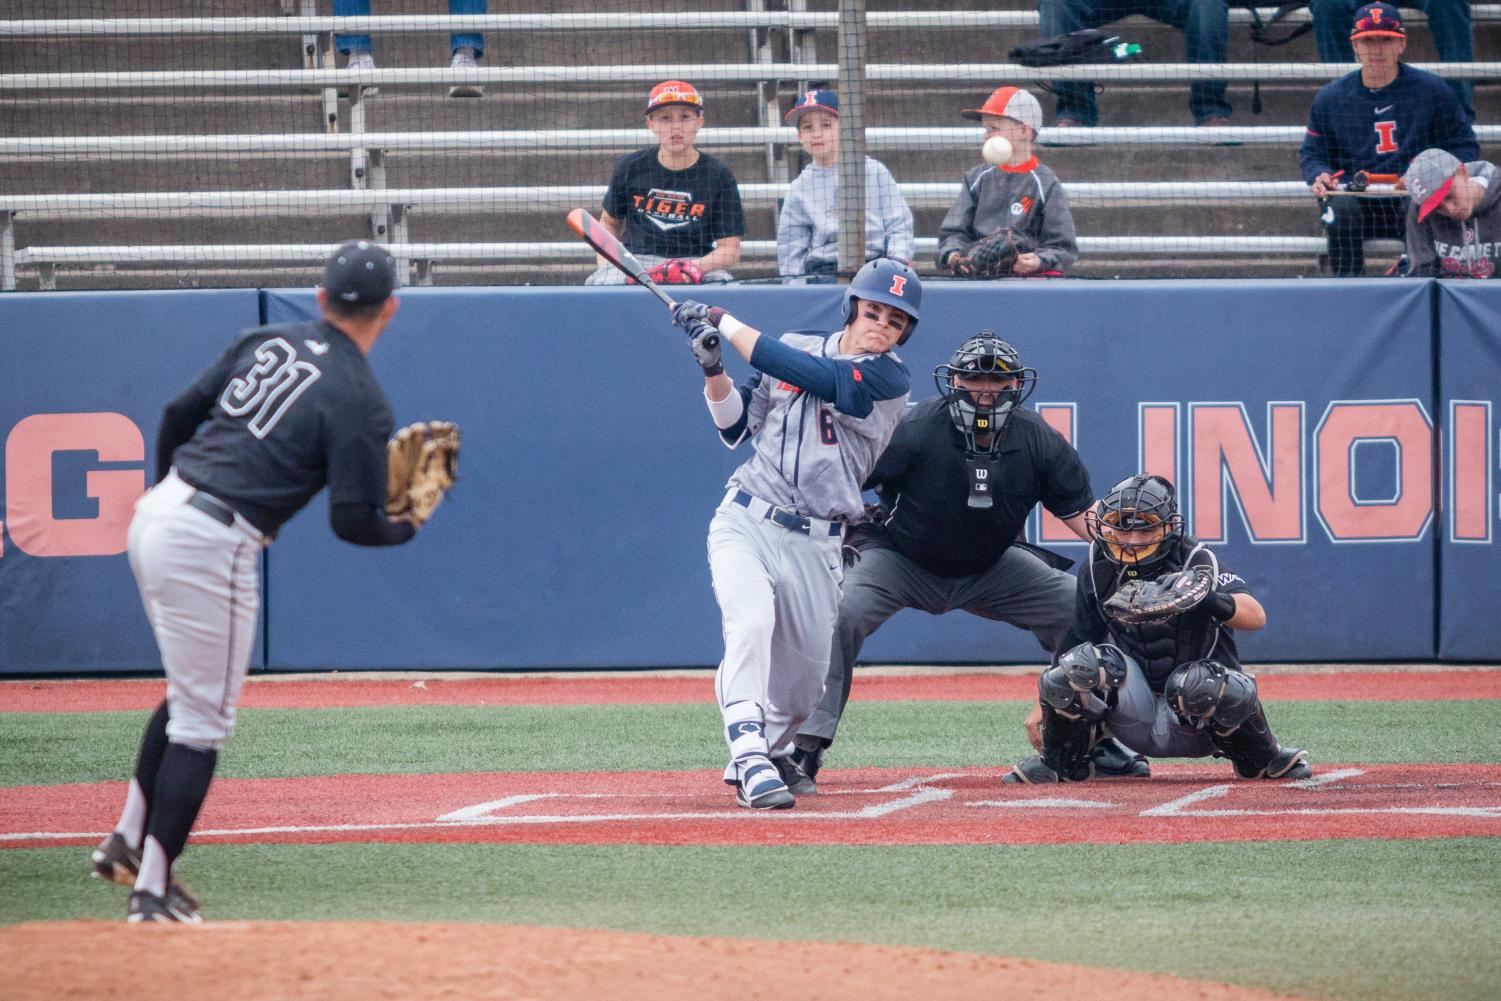 Illinois infielder Michael Massey (6) hits a double to left center field during the game against Grand Canyon at Illinois Field on Saturday, April 21, 2018. The Illini won 3-2.